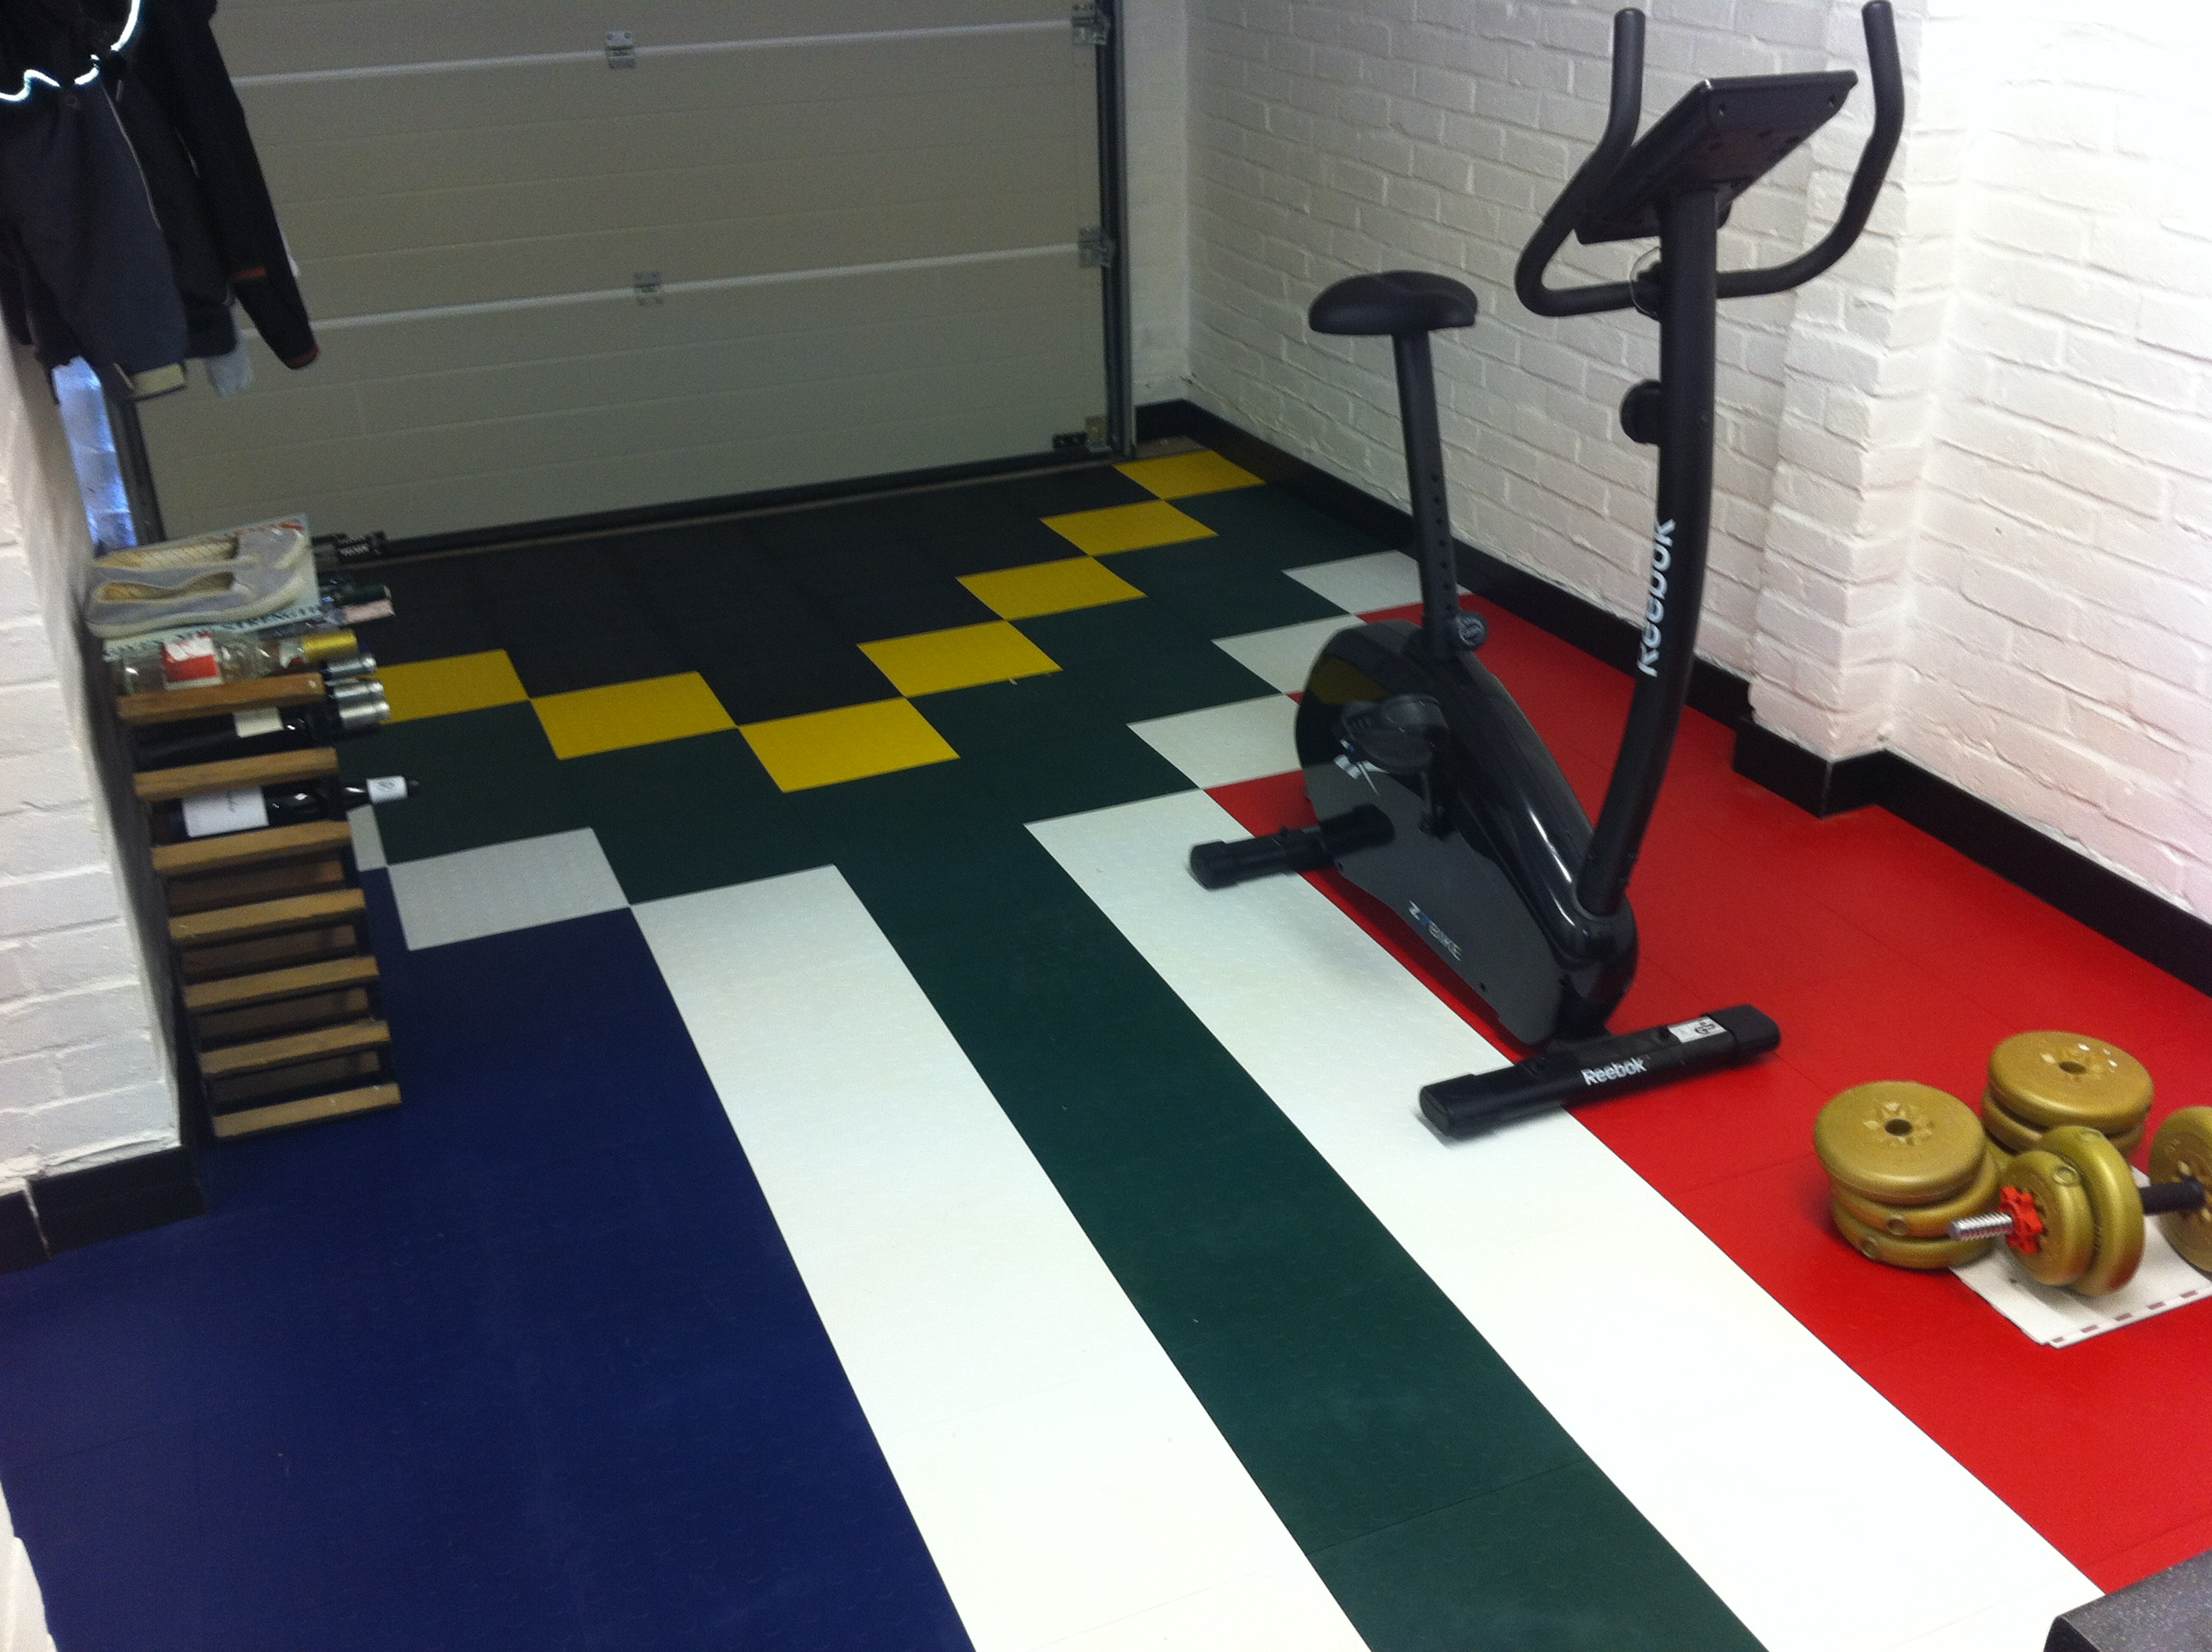 Gym Flooring in South African National Flag Design